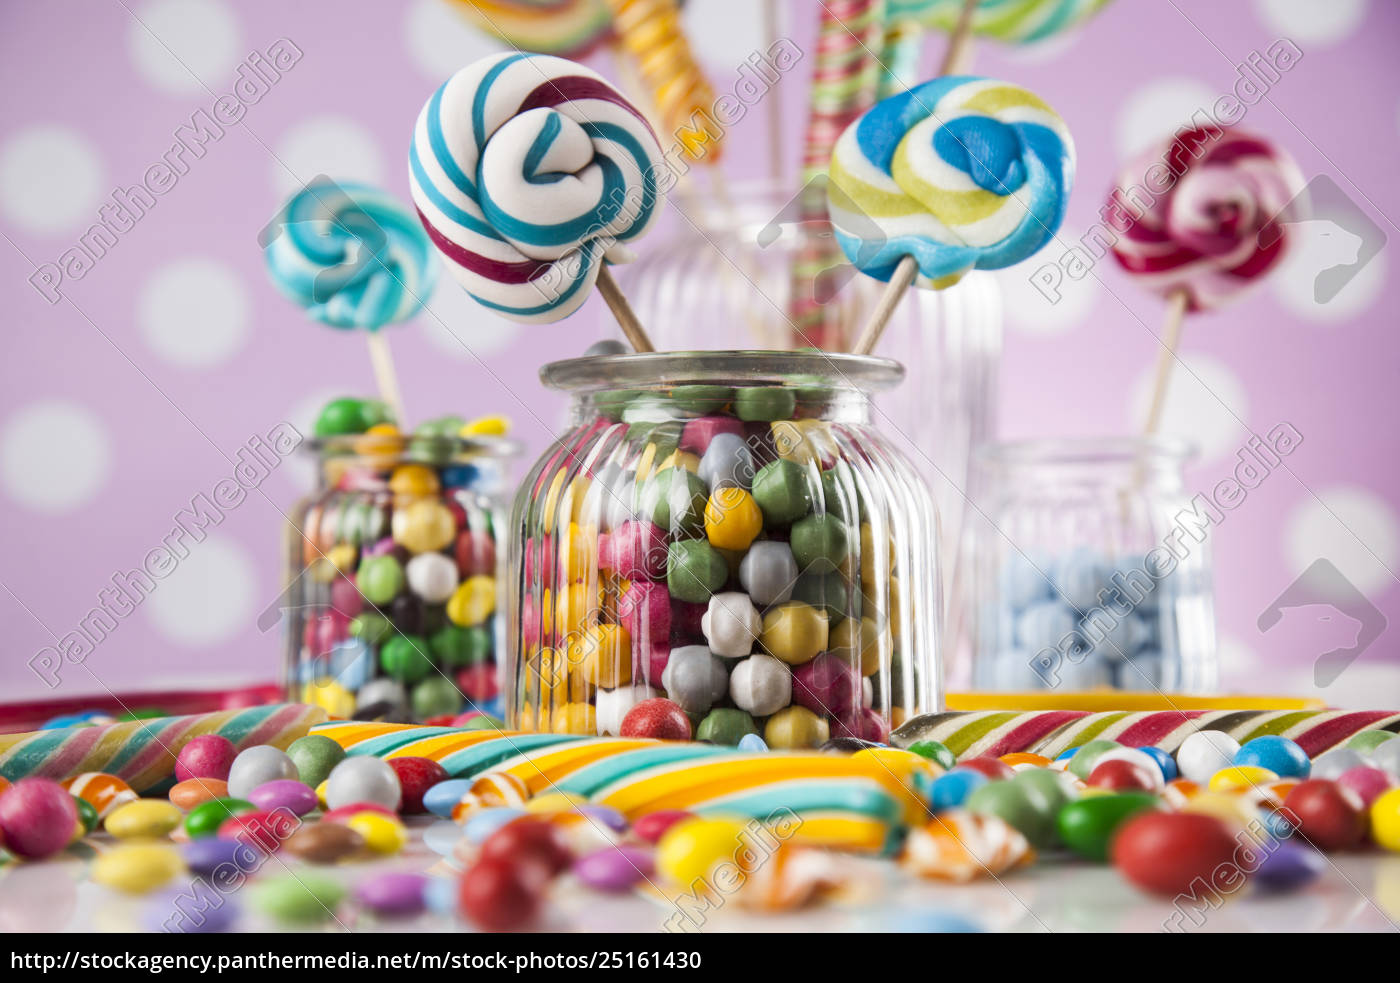 colorful, lollipops, and, different, colored, round - 25161430